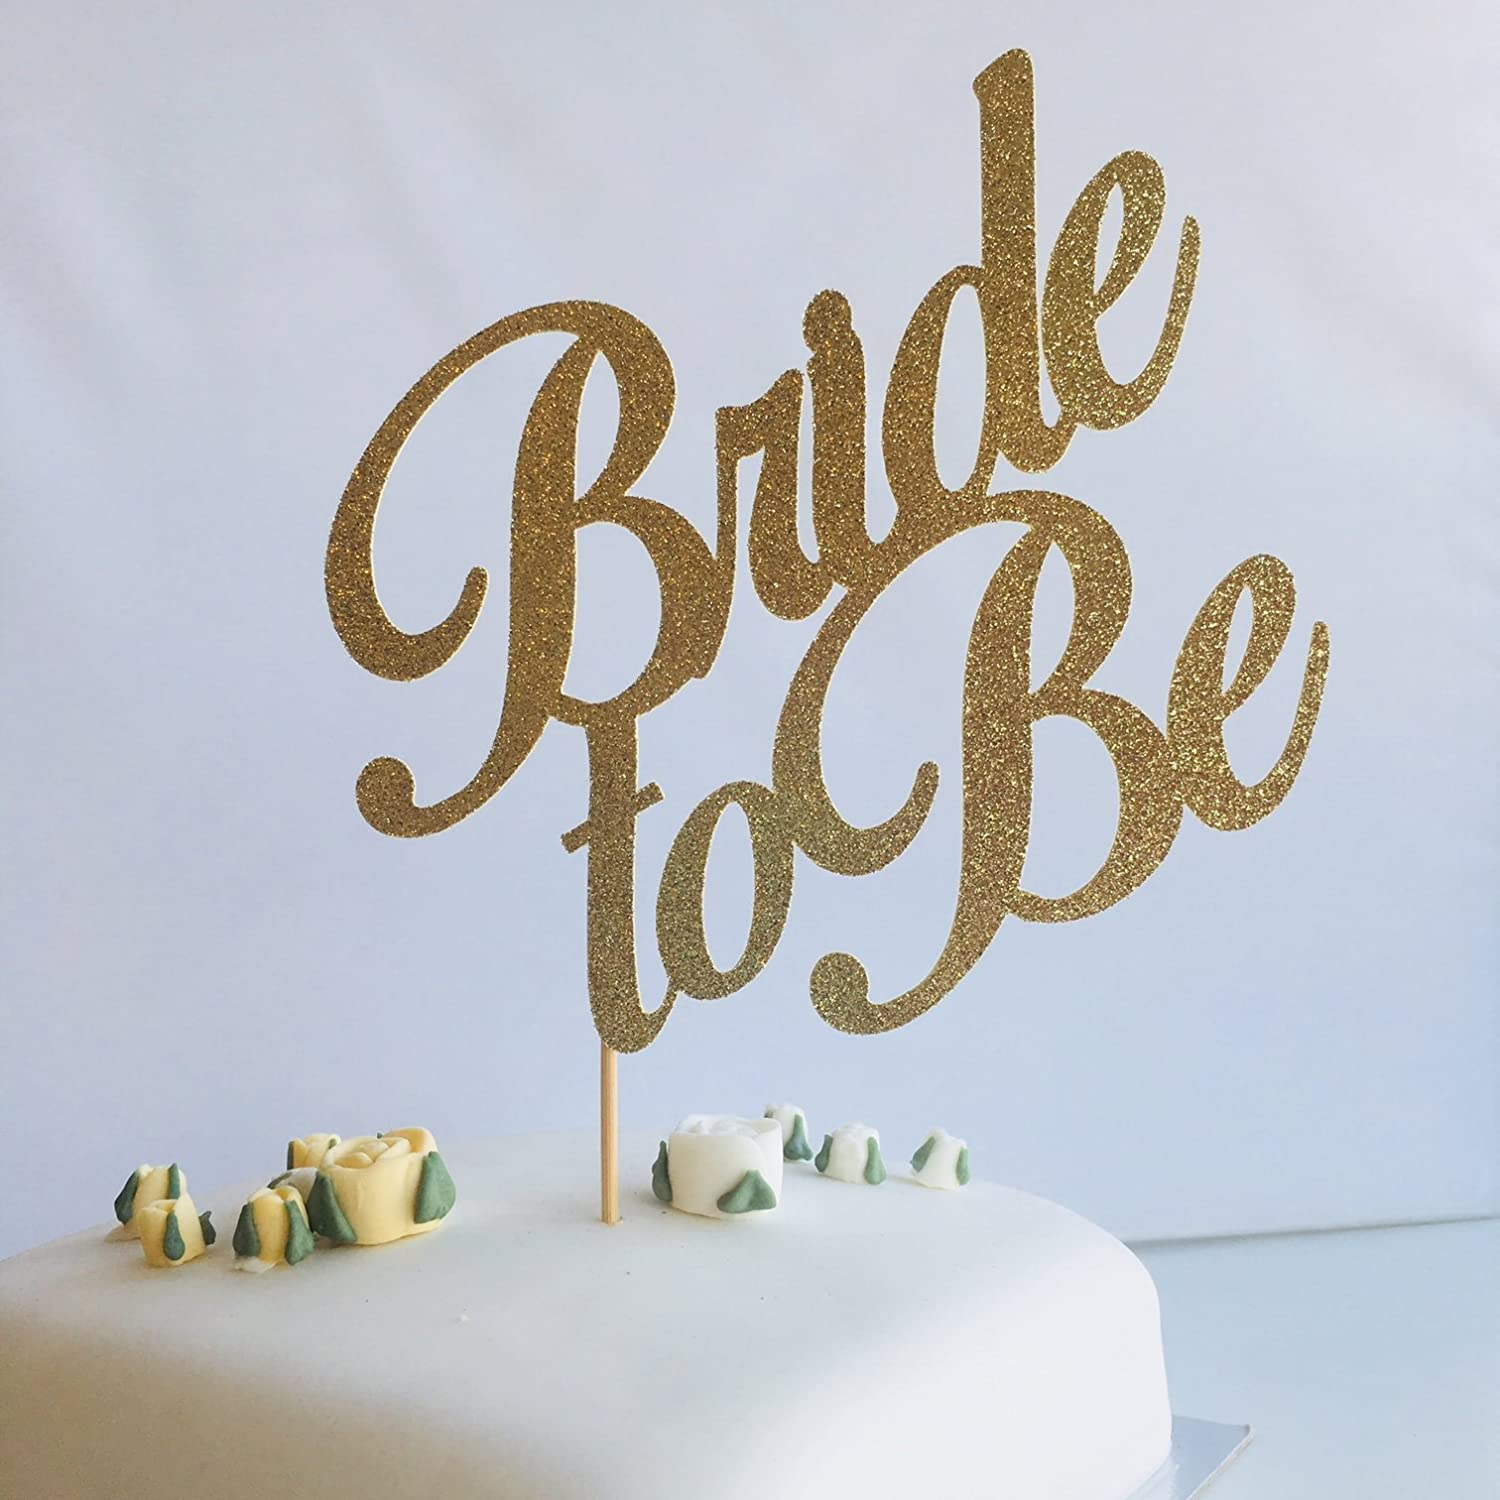 Bridal shower cake decor Script party cake Bride to be cake topper Cake topper for bachelorette parties. Hen Party cake topper